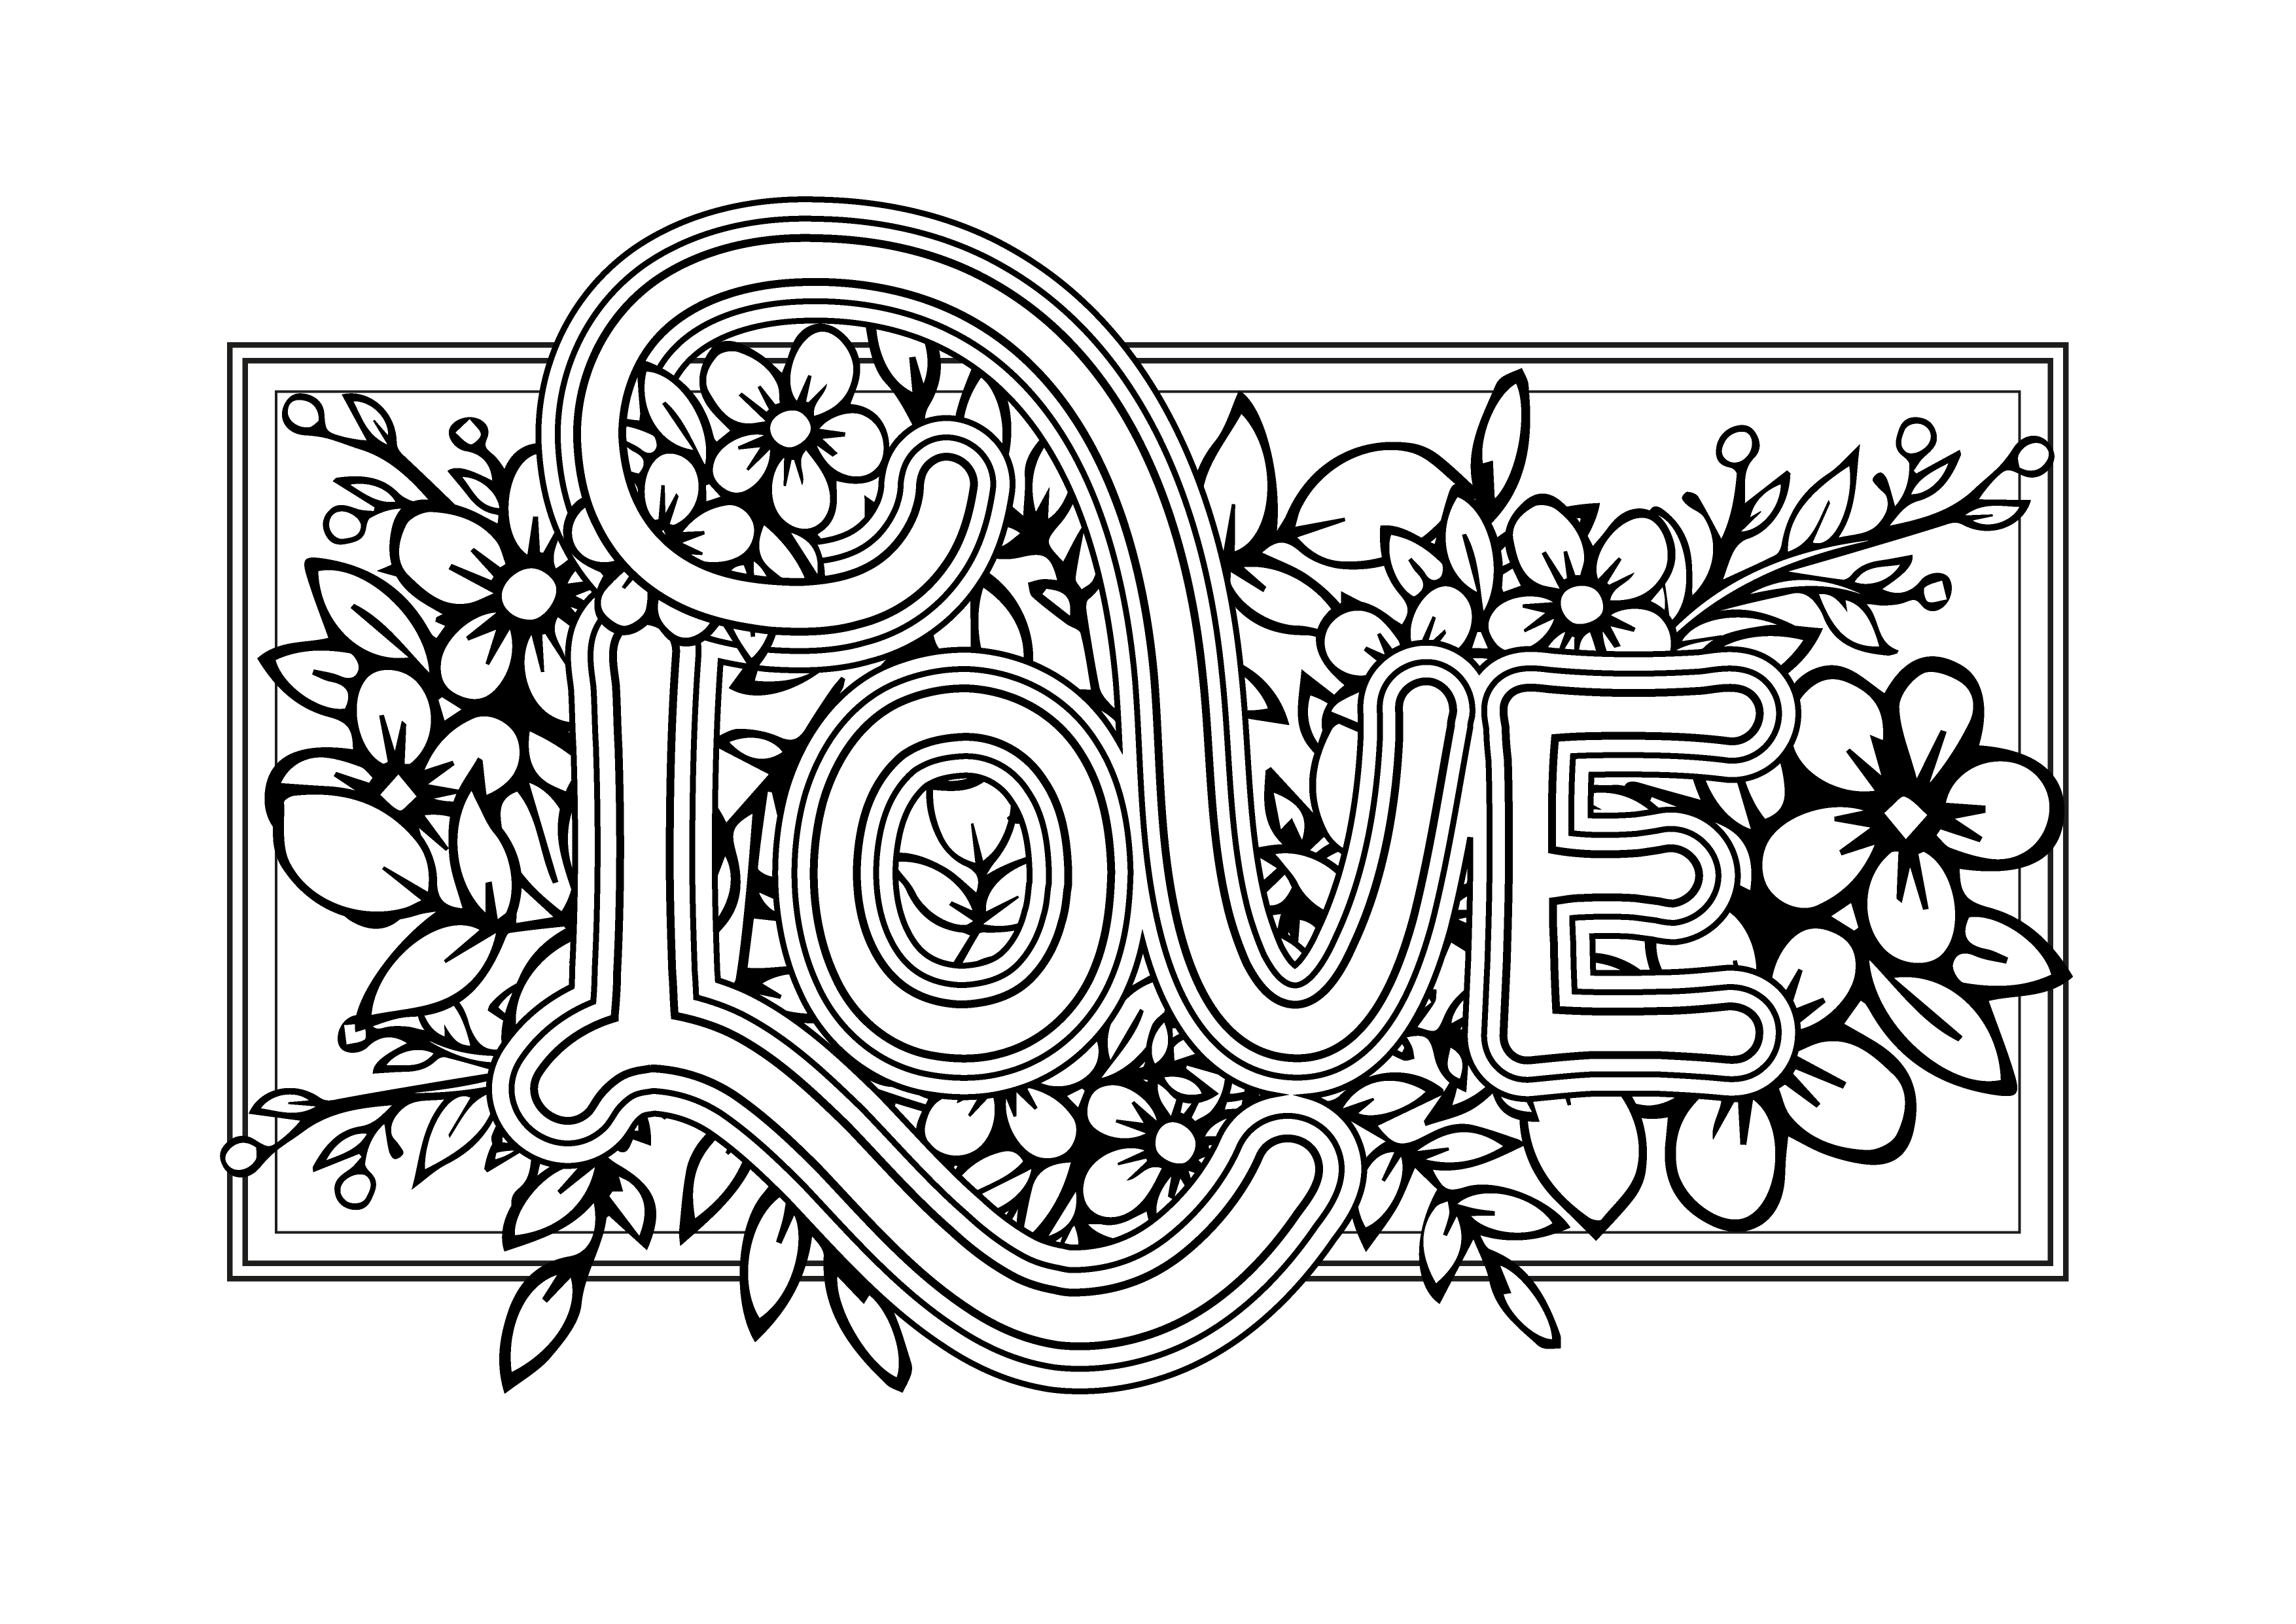 Free Colouring Sheet To Download Love-01